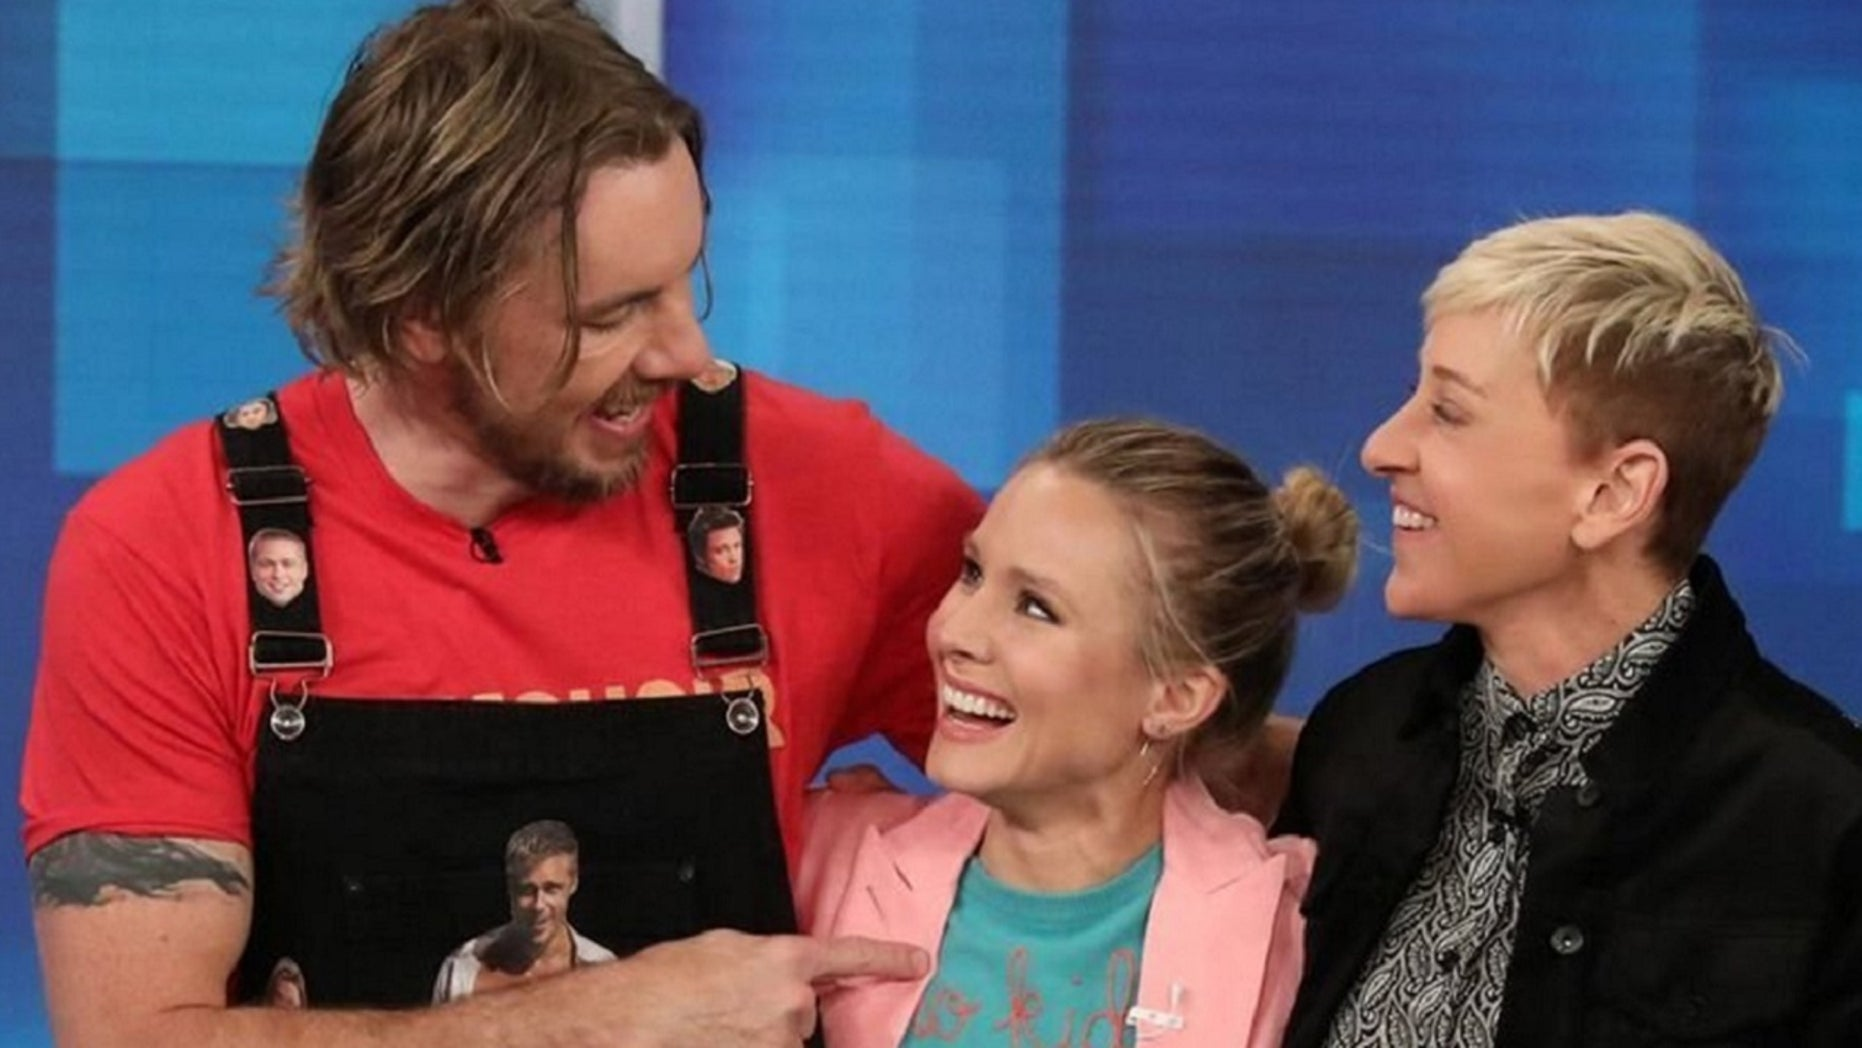 """Kristin Bell surprises Dax Shepard on his birthday during an appearance on """"The Ellen Show"""" on Thursday."""